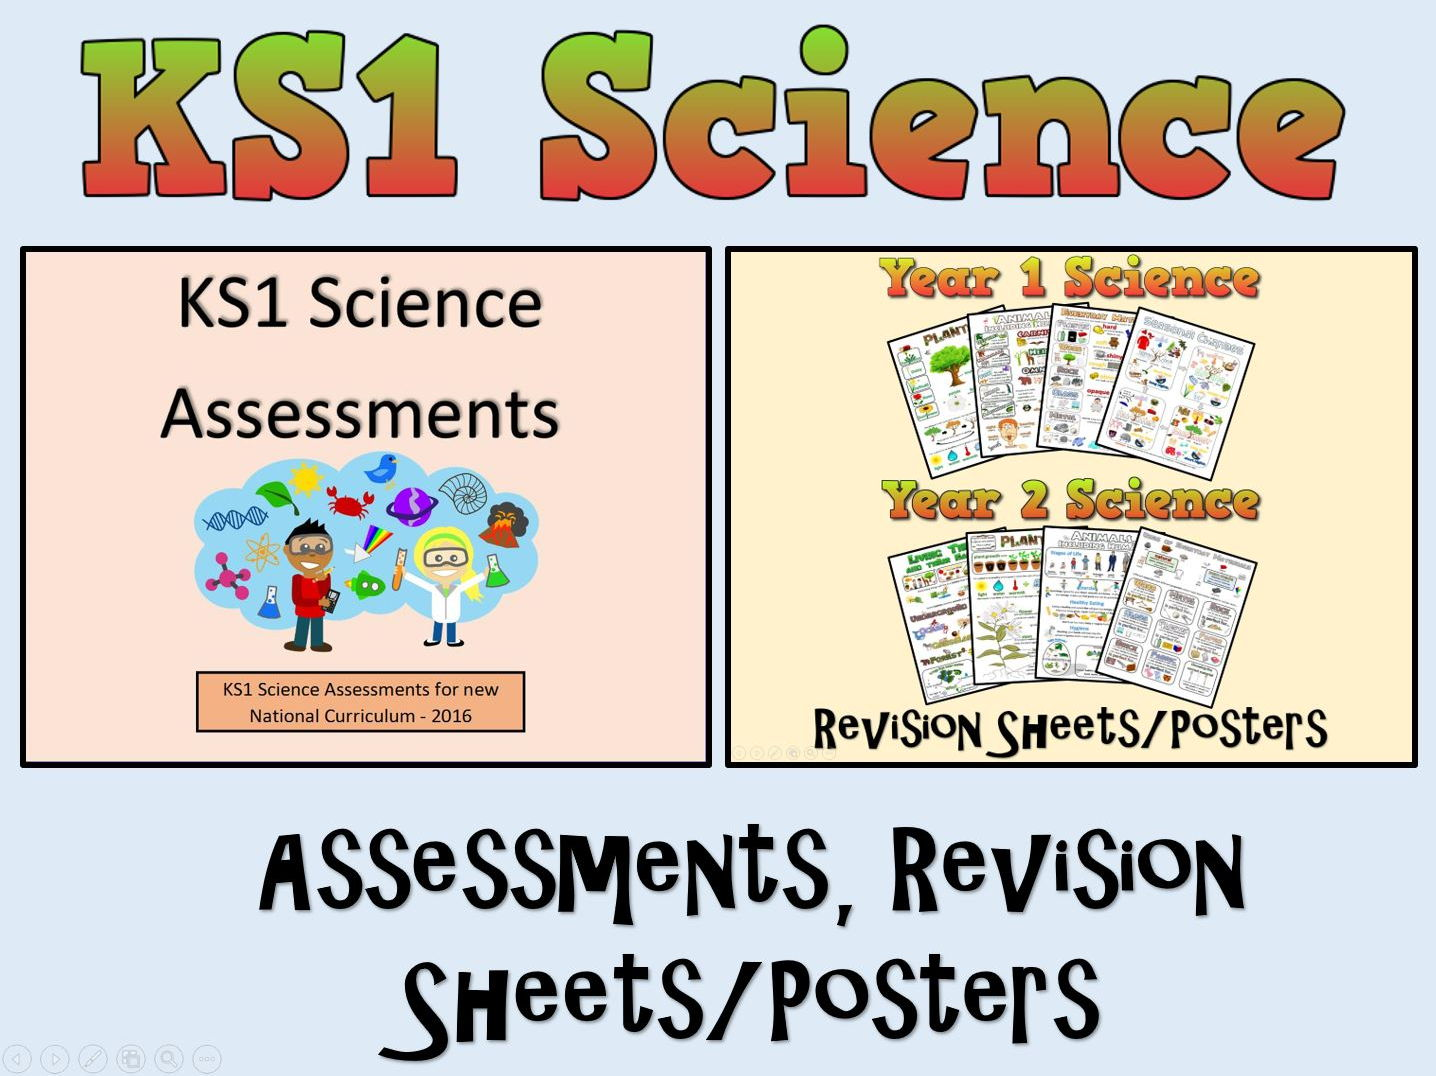 KS1 Science Assessments + Posters/Revision Sheets